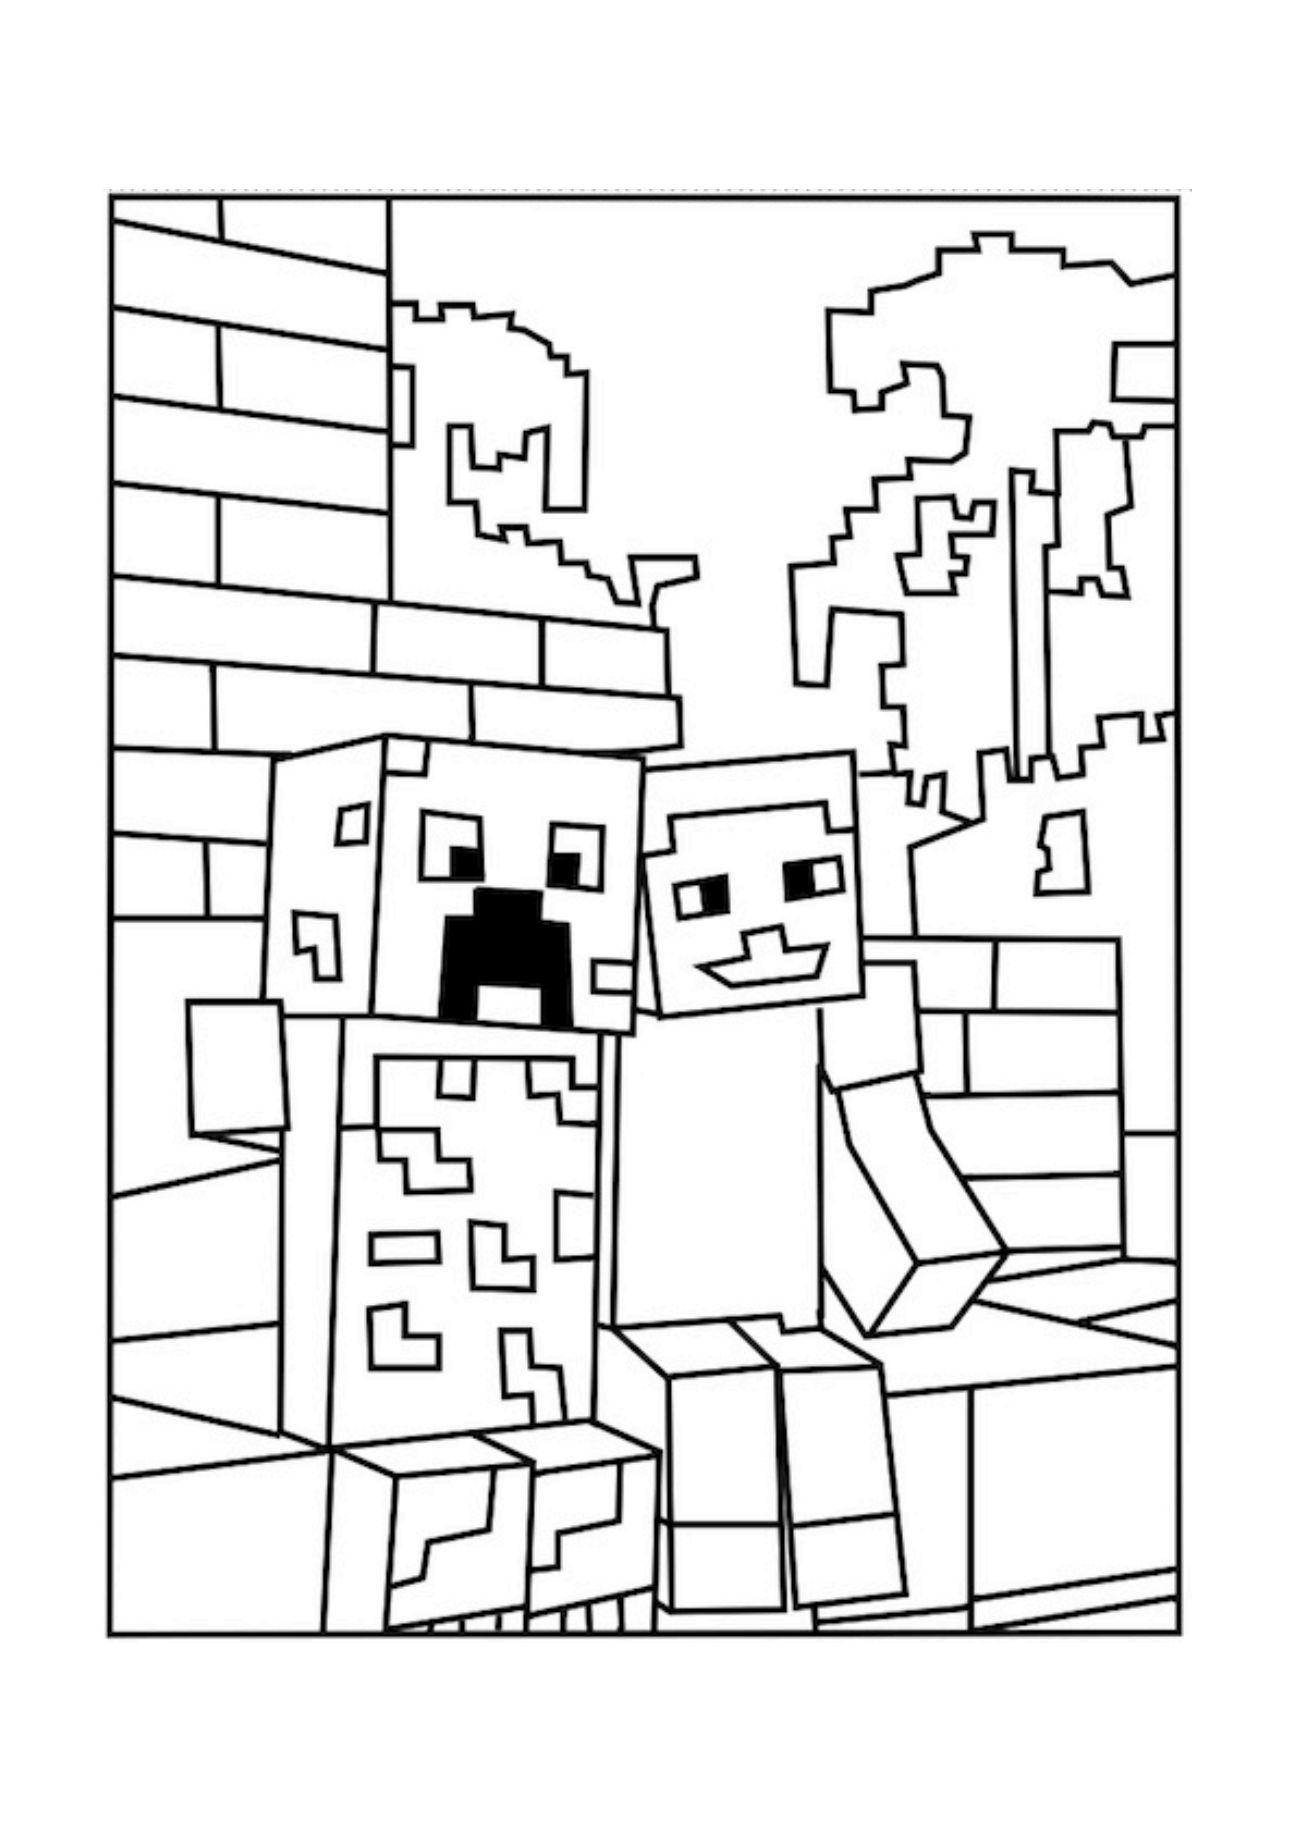 Minecraft Free Coloring Pages : minecraft, coloring, pages, Printable, Minecraft, Coloring, Pages